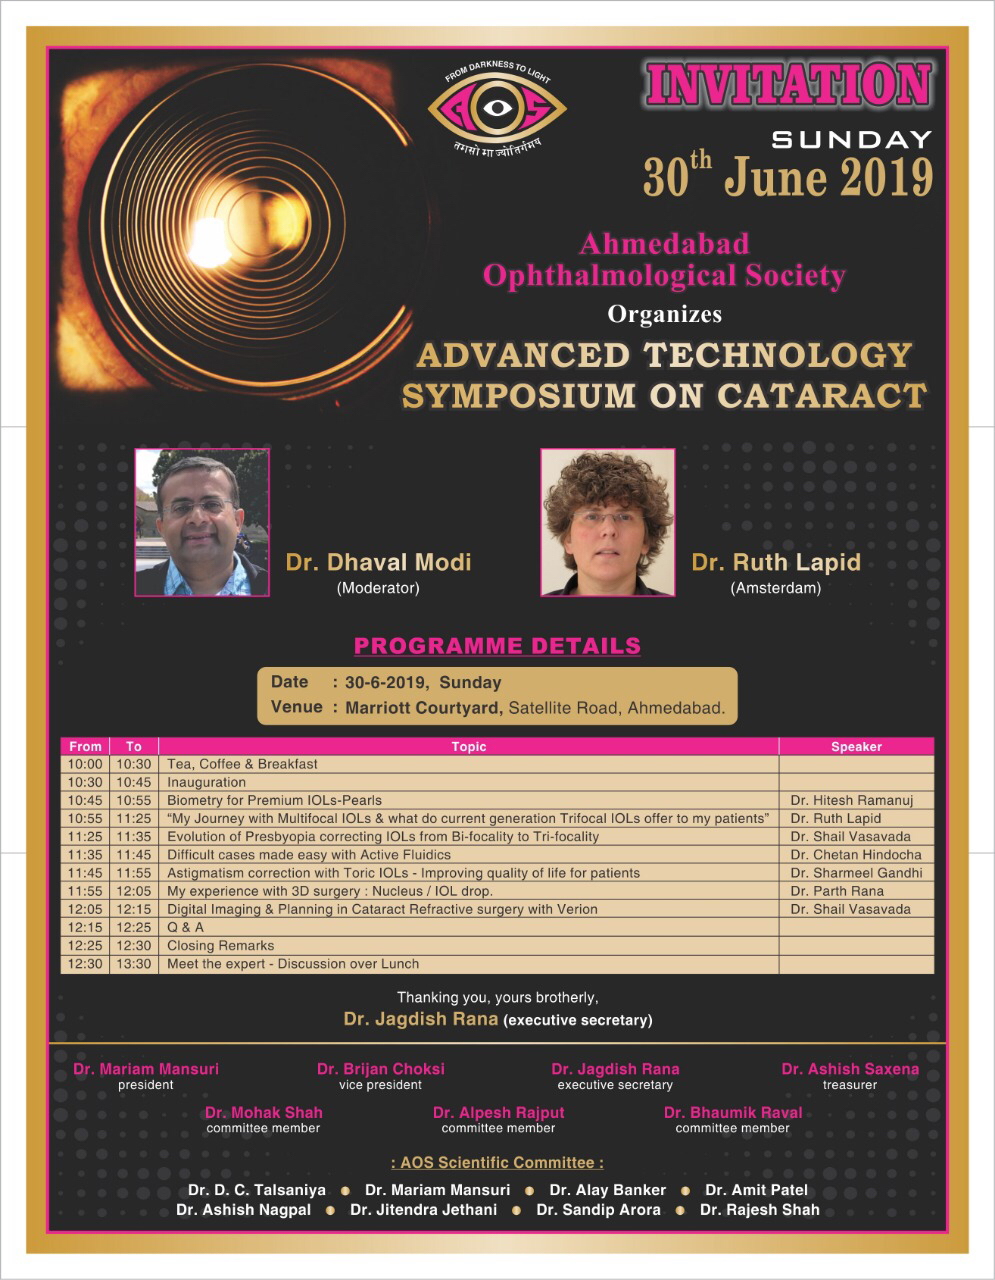 Advanced Technology Symposium on Cataract